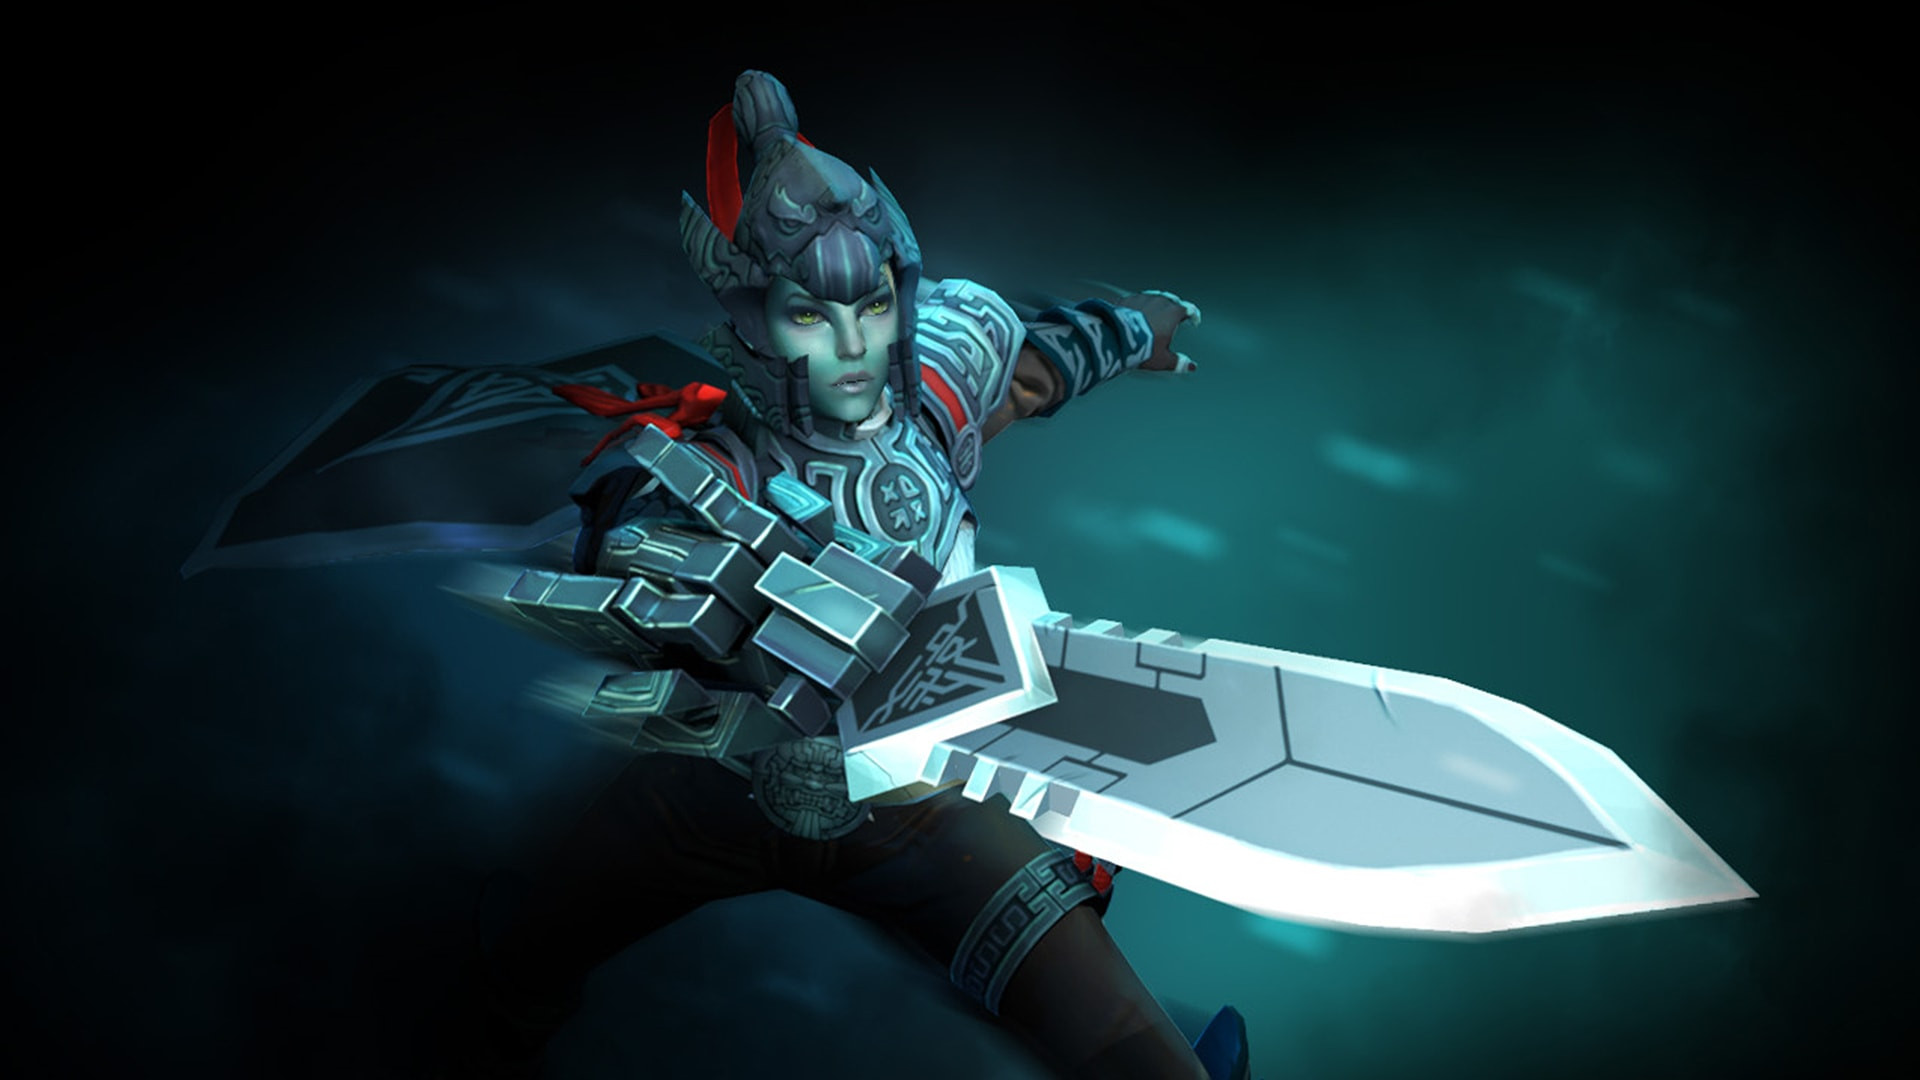 Dota2 : Phantom Assassin for mobile